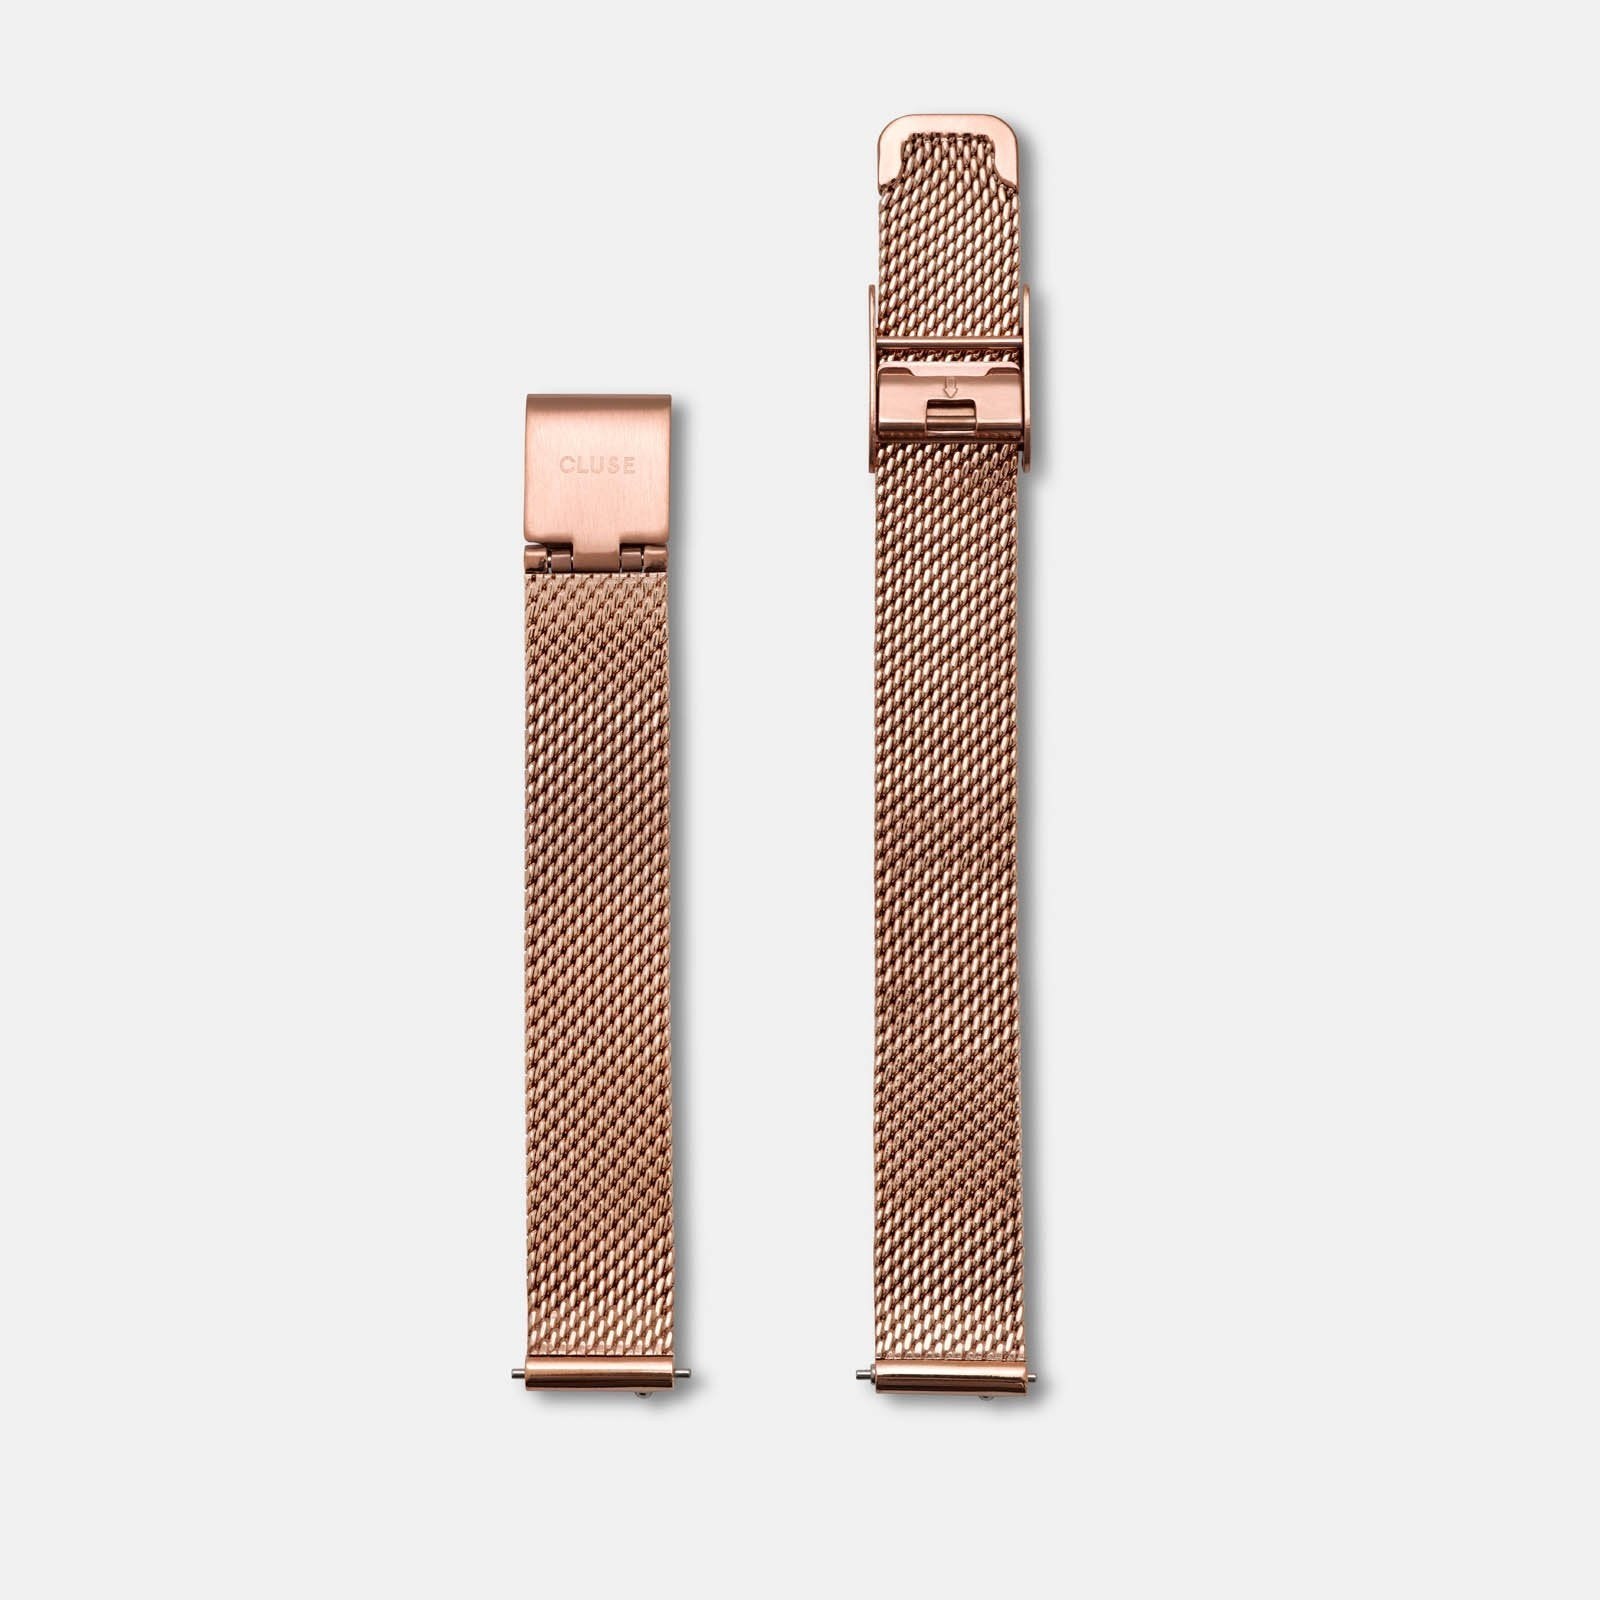 CLUSE 12 mm Strap Mesh Rose Gold CLS502 - strap